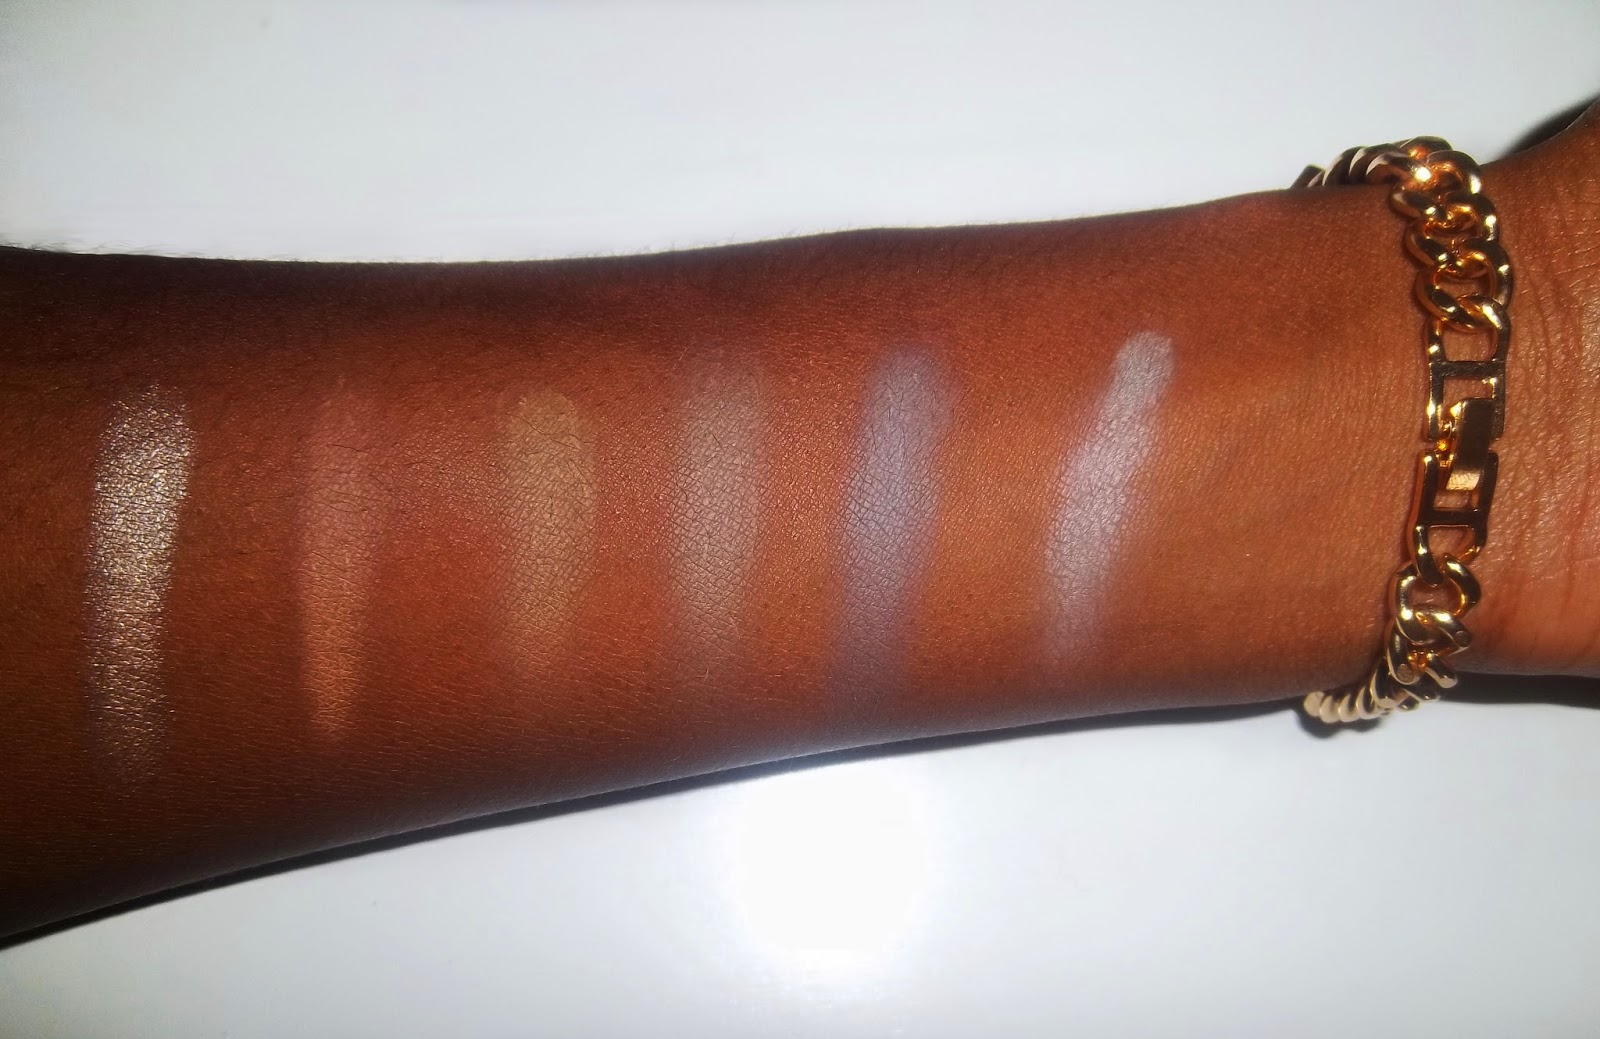 swatch-au-naturel-sleek